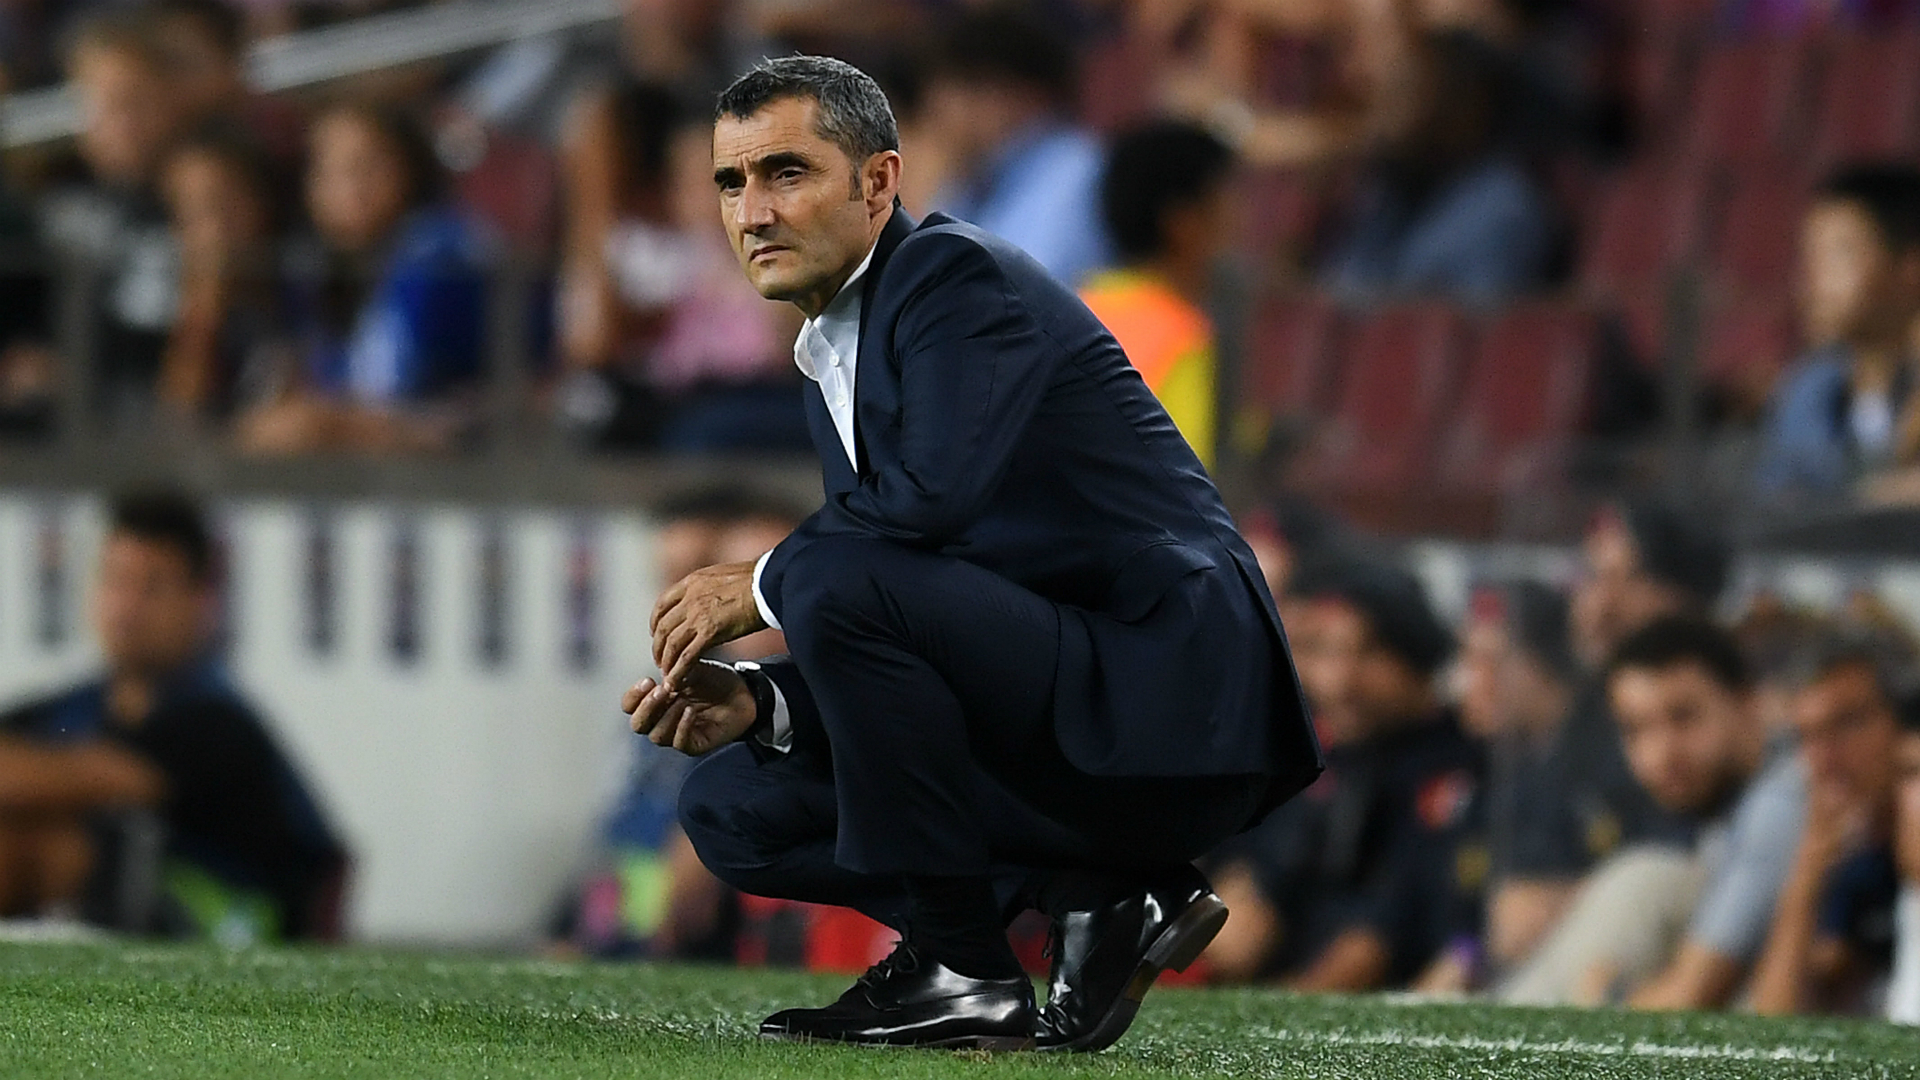 Barcelona 2018-19: How Valverde serenely steered Catalans to another LaLiga title